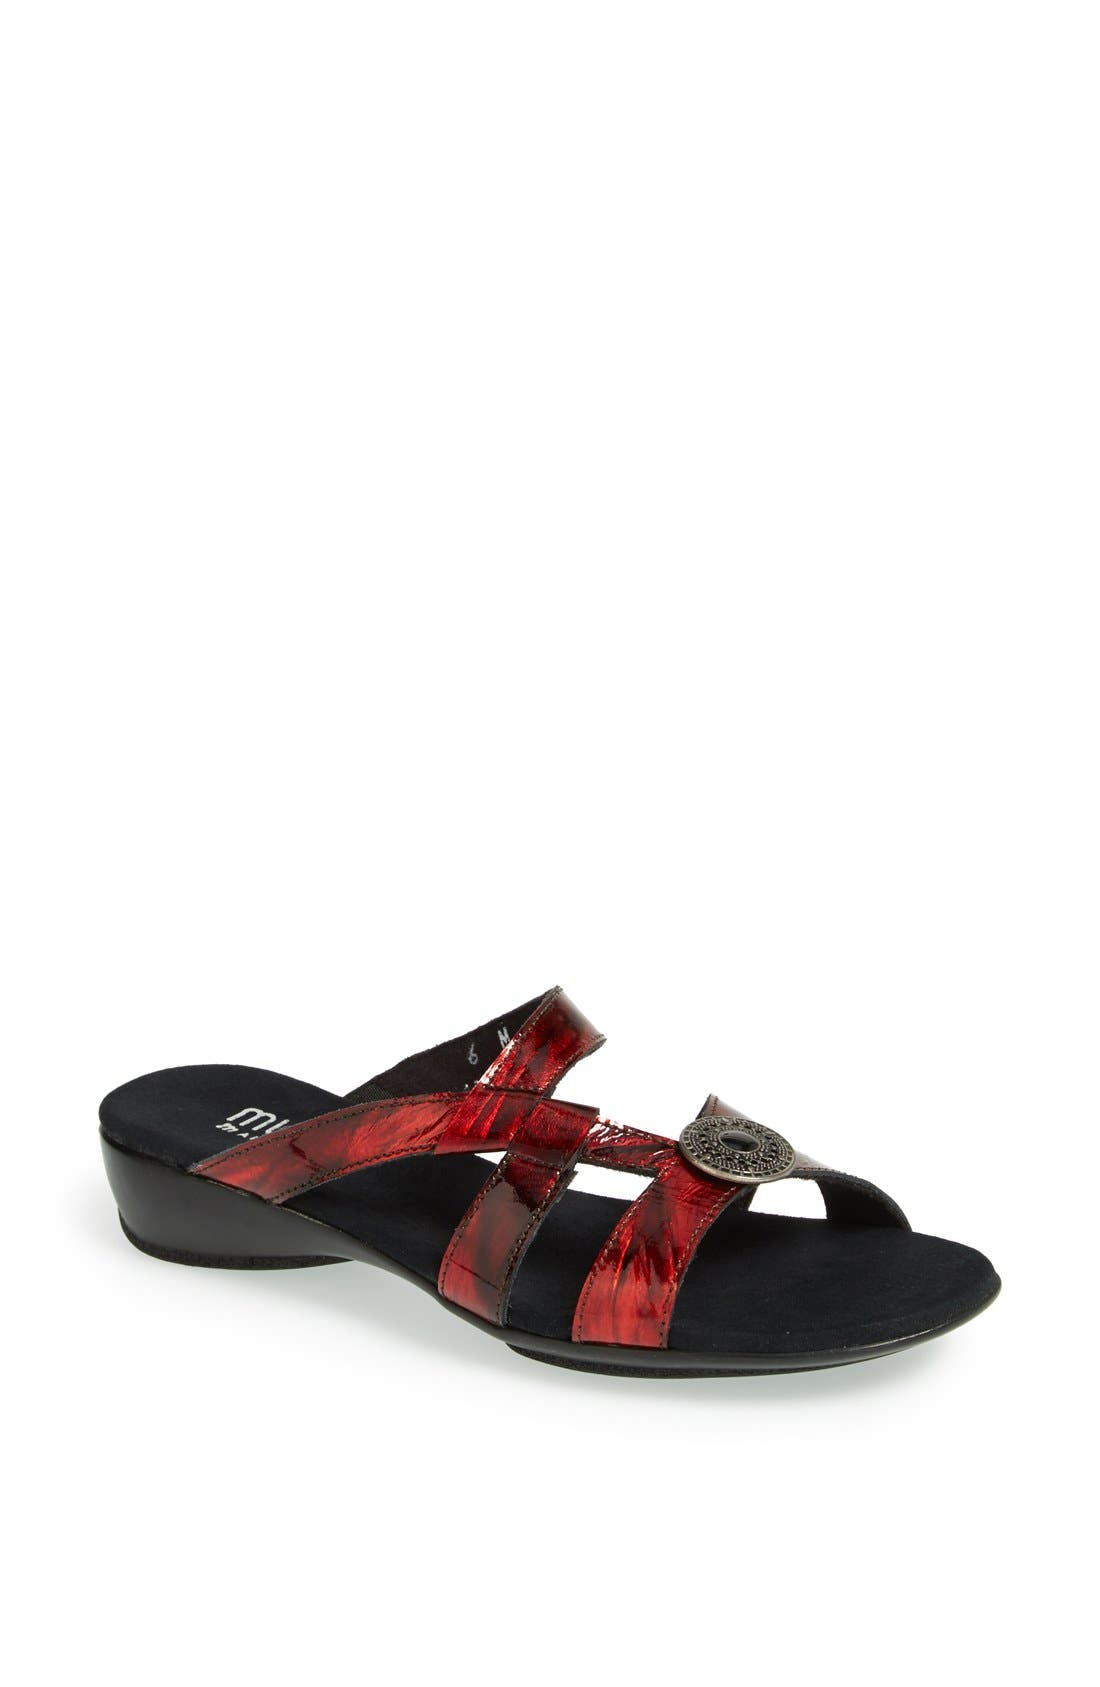 'Chloe' Leather Slide,                         Main,                         color, 600